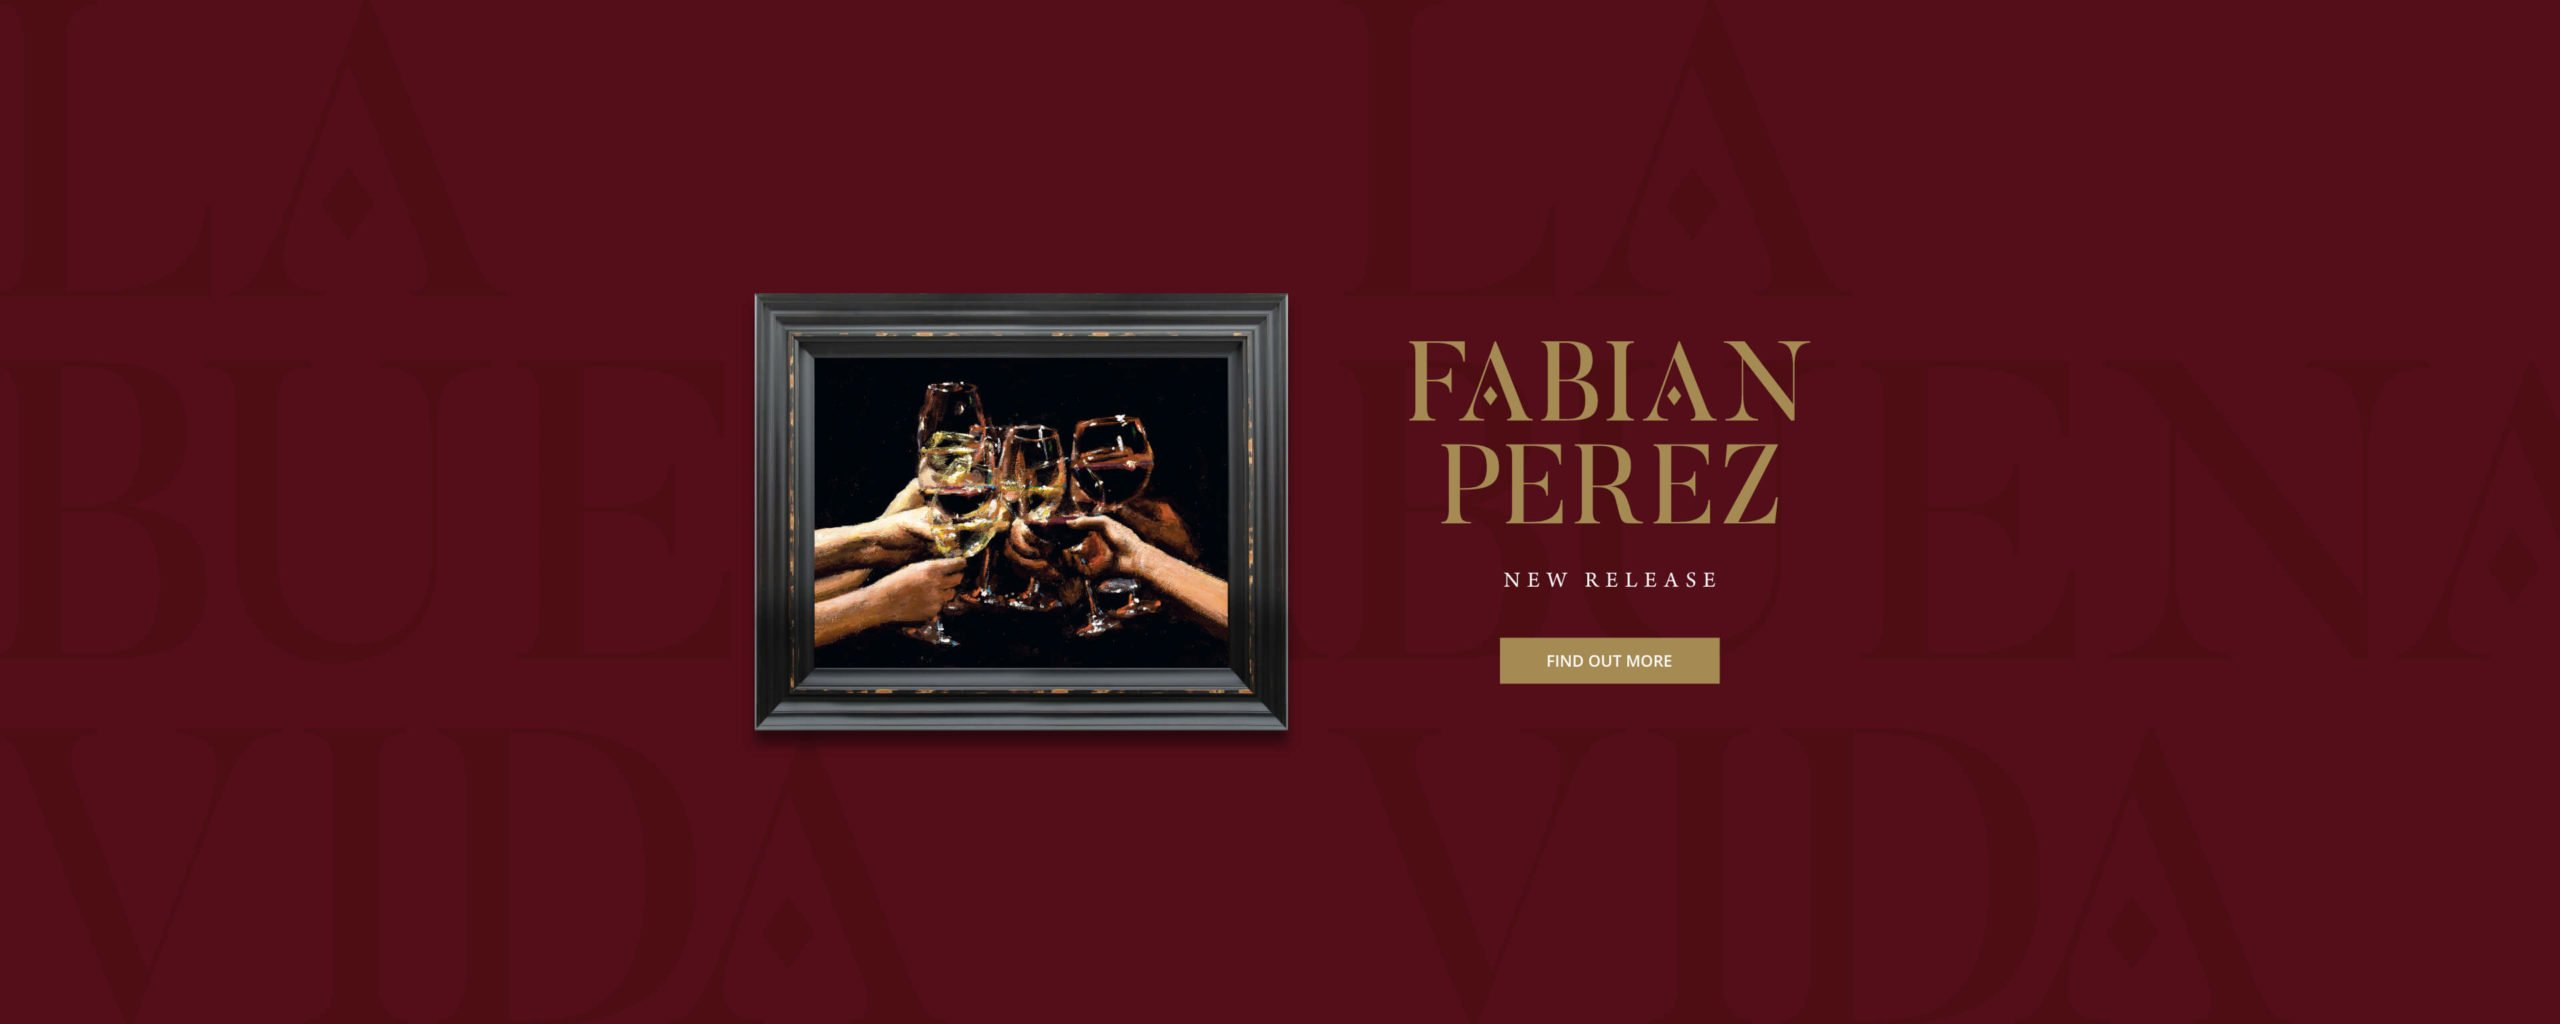 Fabian Perez – April 2020 Release